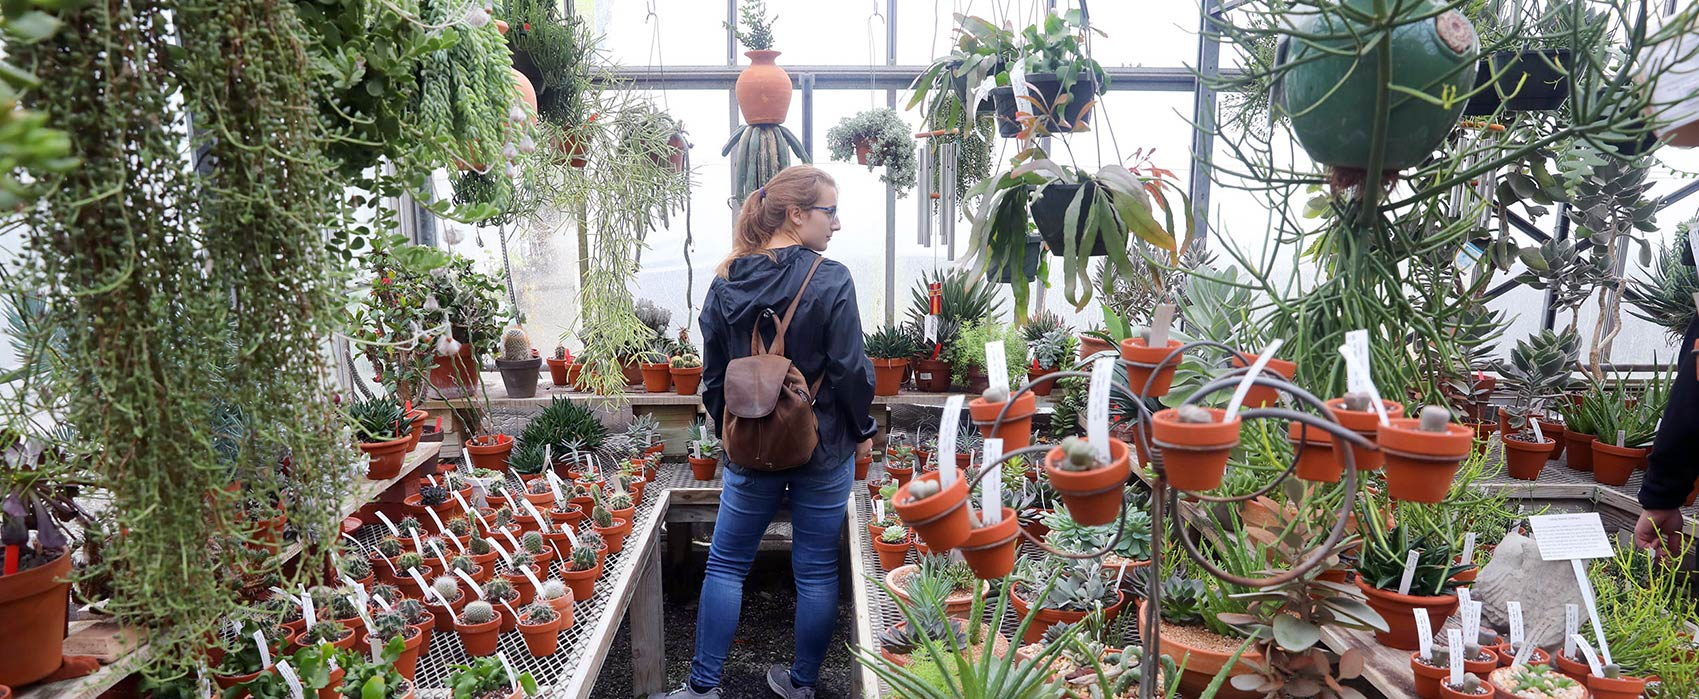 Student exploring campus greenhouse